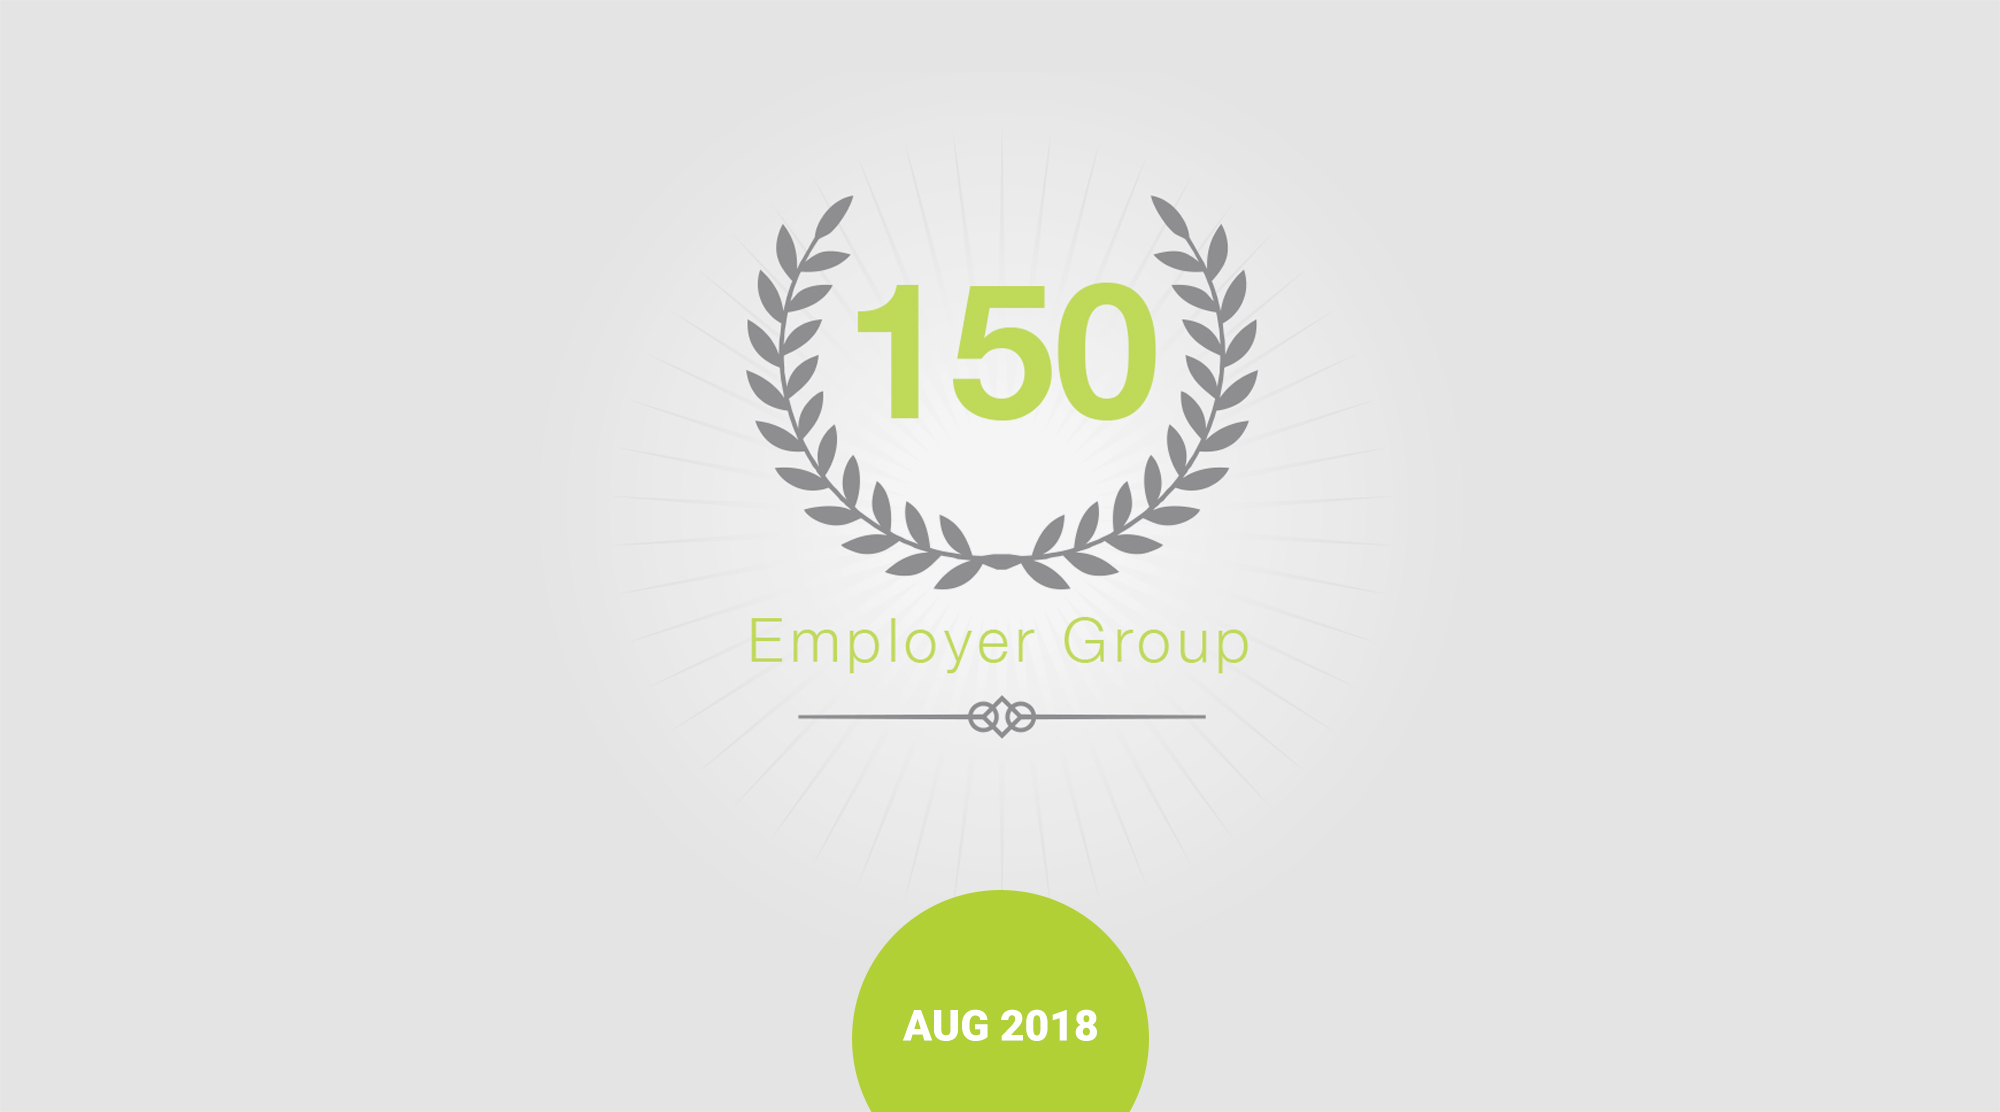 CHARGE launched 150th employer group badge and graphic